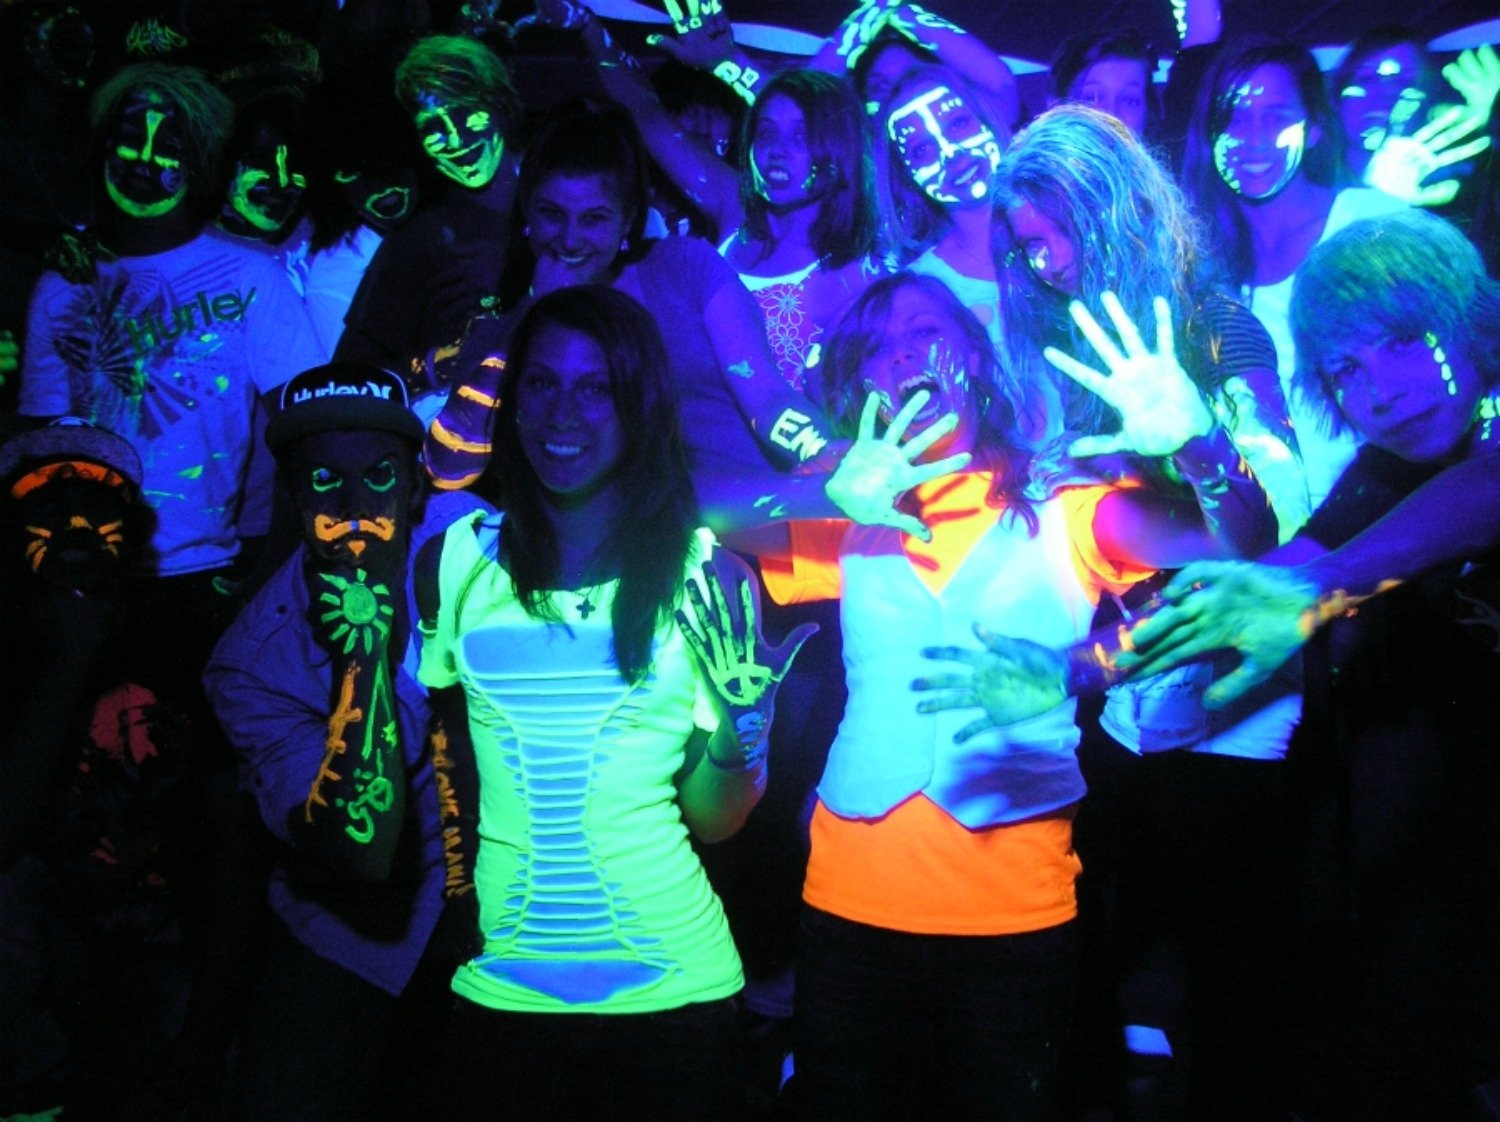 10 Trendy Glow In The Dark Outfit Ideas black light party outfit ideas outfit ideas hq 2021